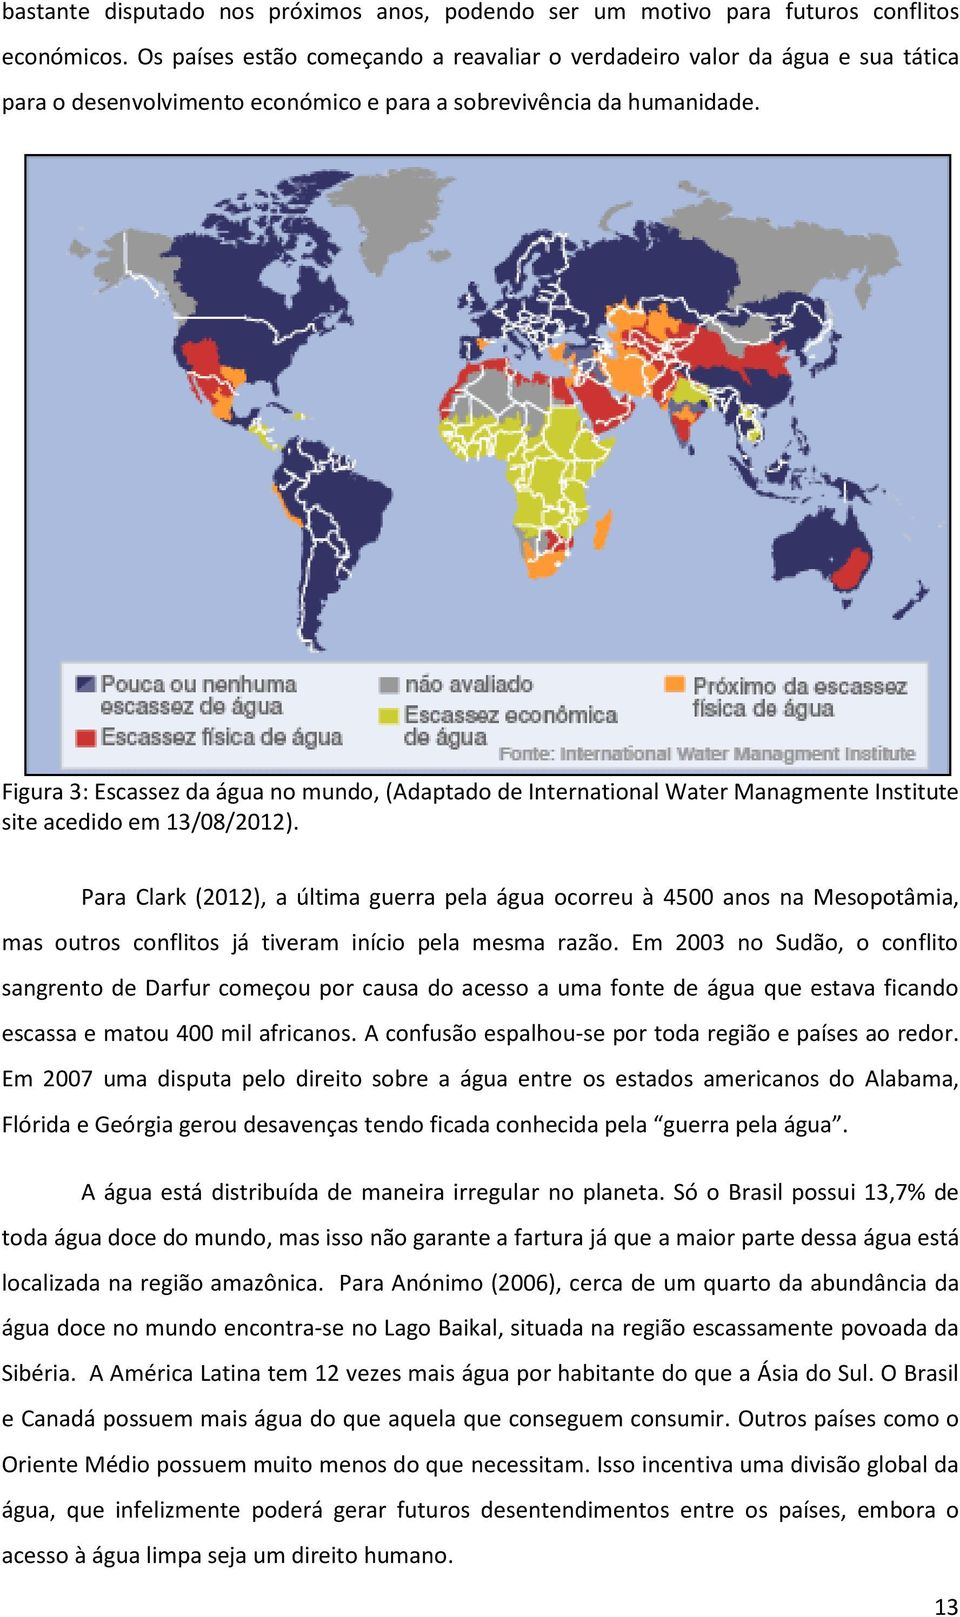 Figura 3: Escassez da água no mundo, (Adaptado de International Water Managmente Institute site acedido em 13/08/2012).